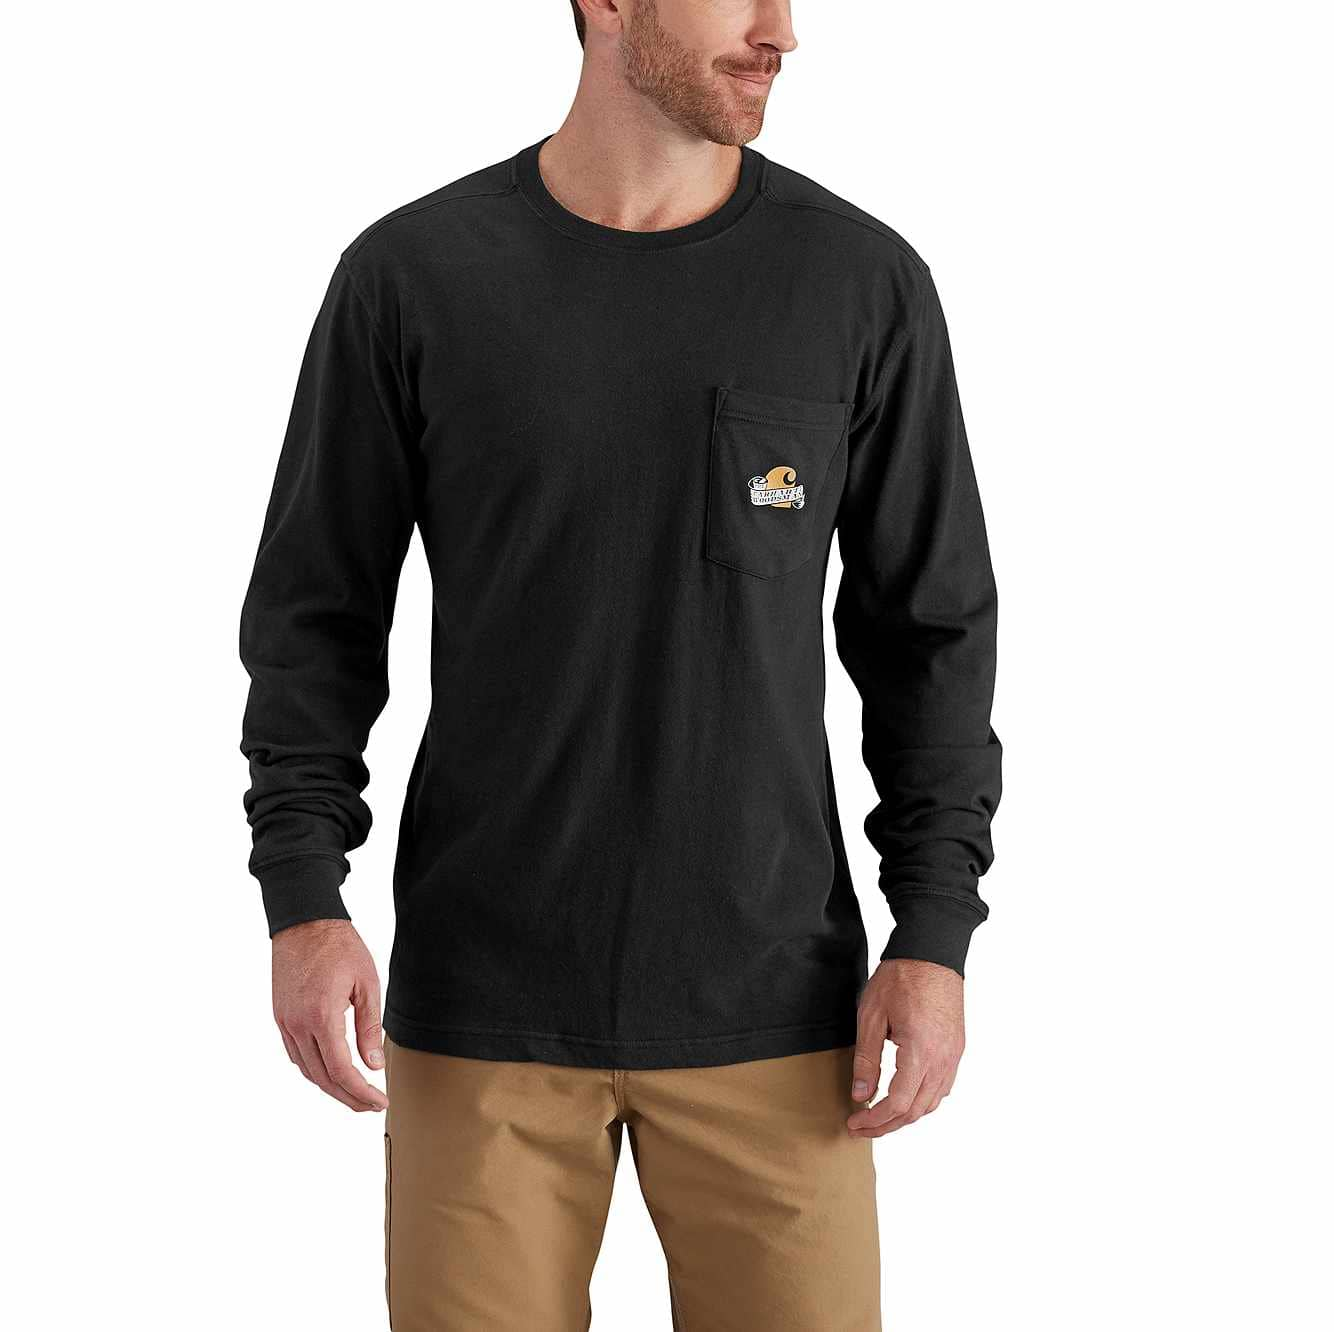 Picture of Maddock Graphic Woodsman Long-Sleeve T-Shirt in Black